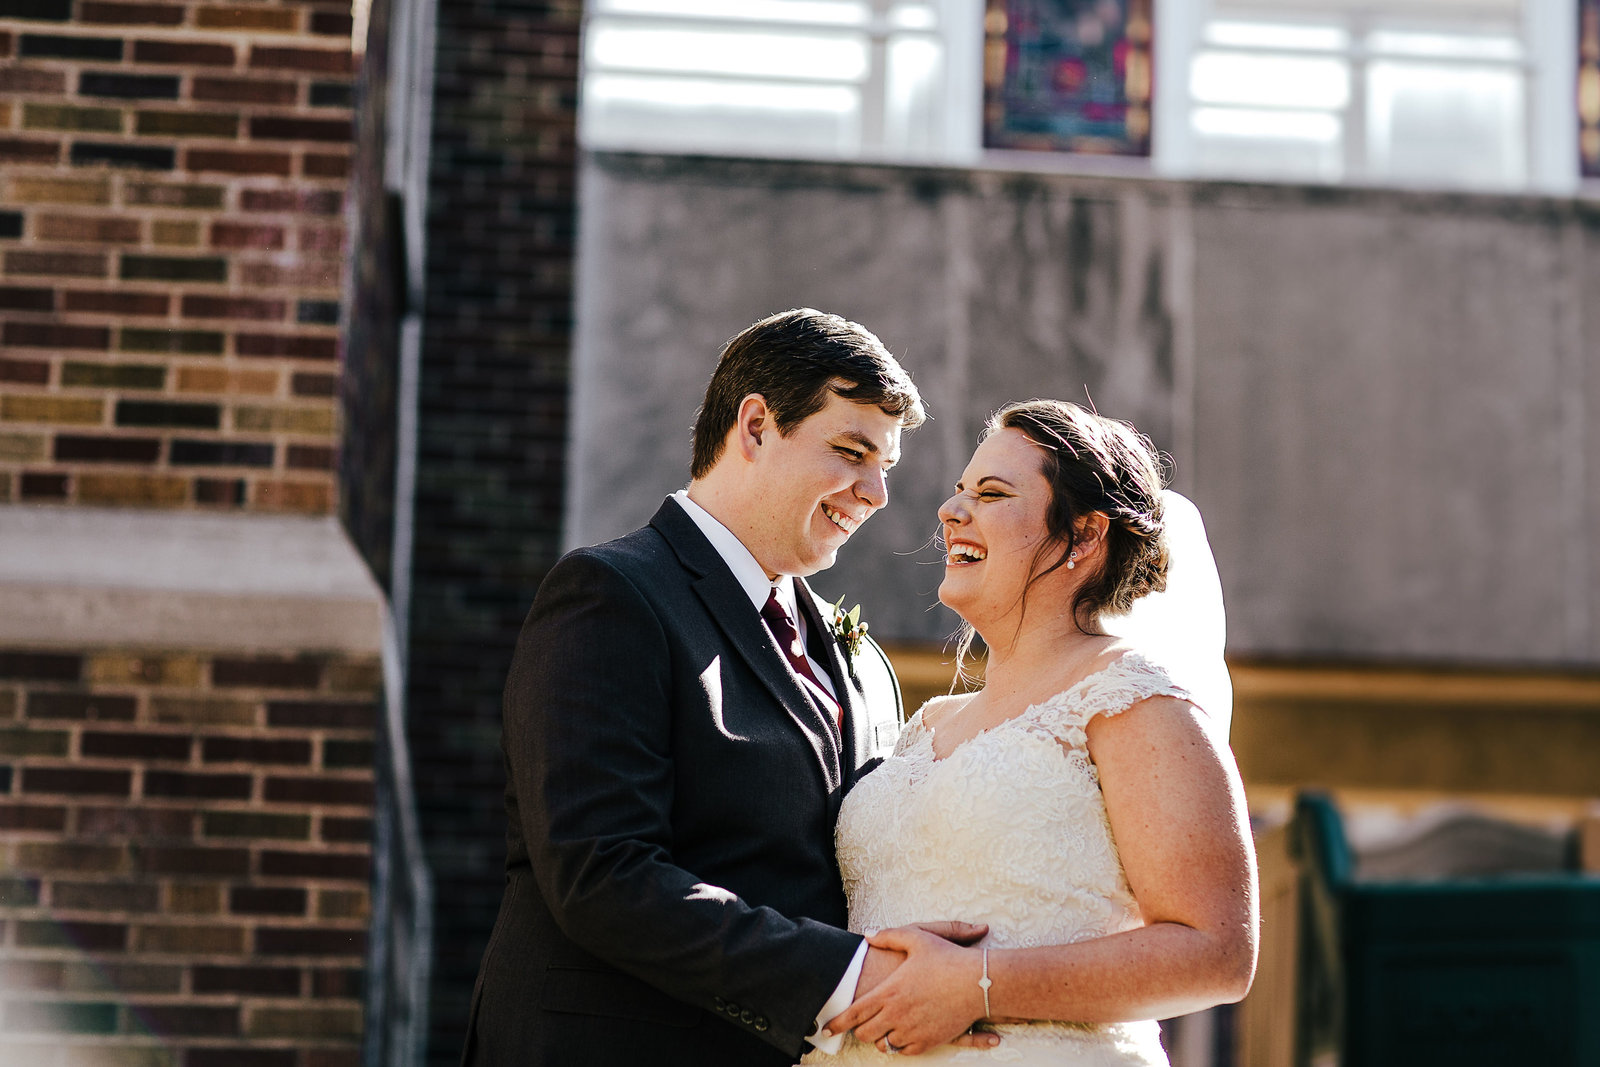 SaraLane-And-Stevie-Wedding-Photography-Memphis-TN-LaurenKevin-LR-196PS